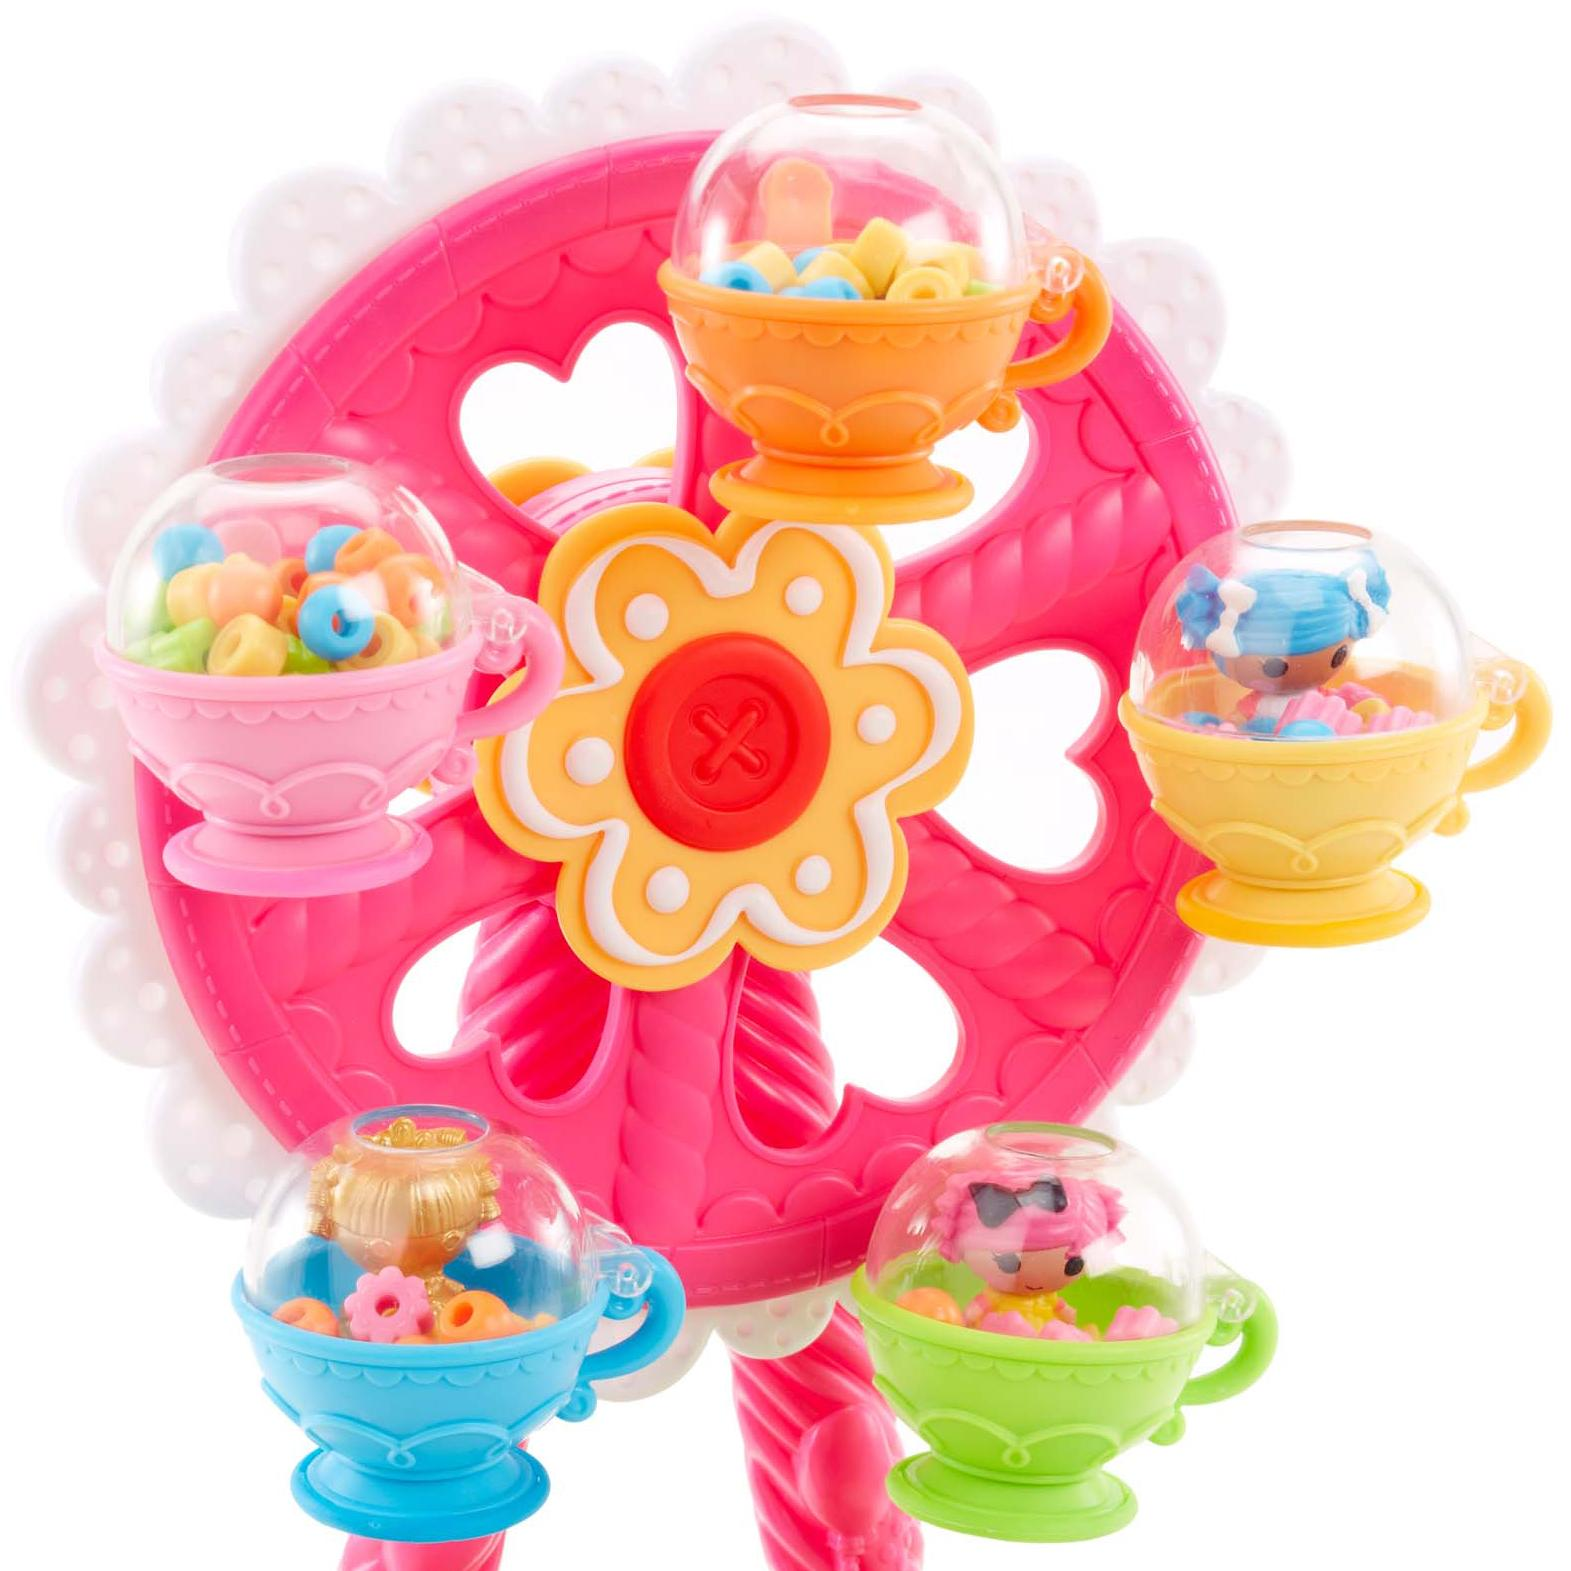 Amazon.com: Lalaloopsy Tinies Jewelry Maker Playset: Toys & Games